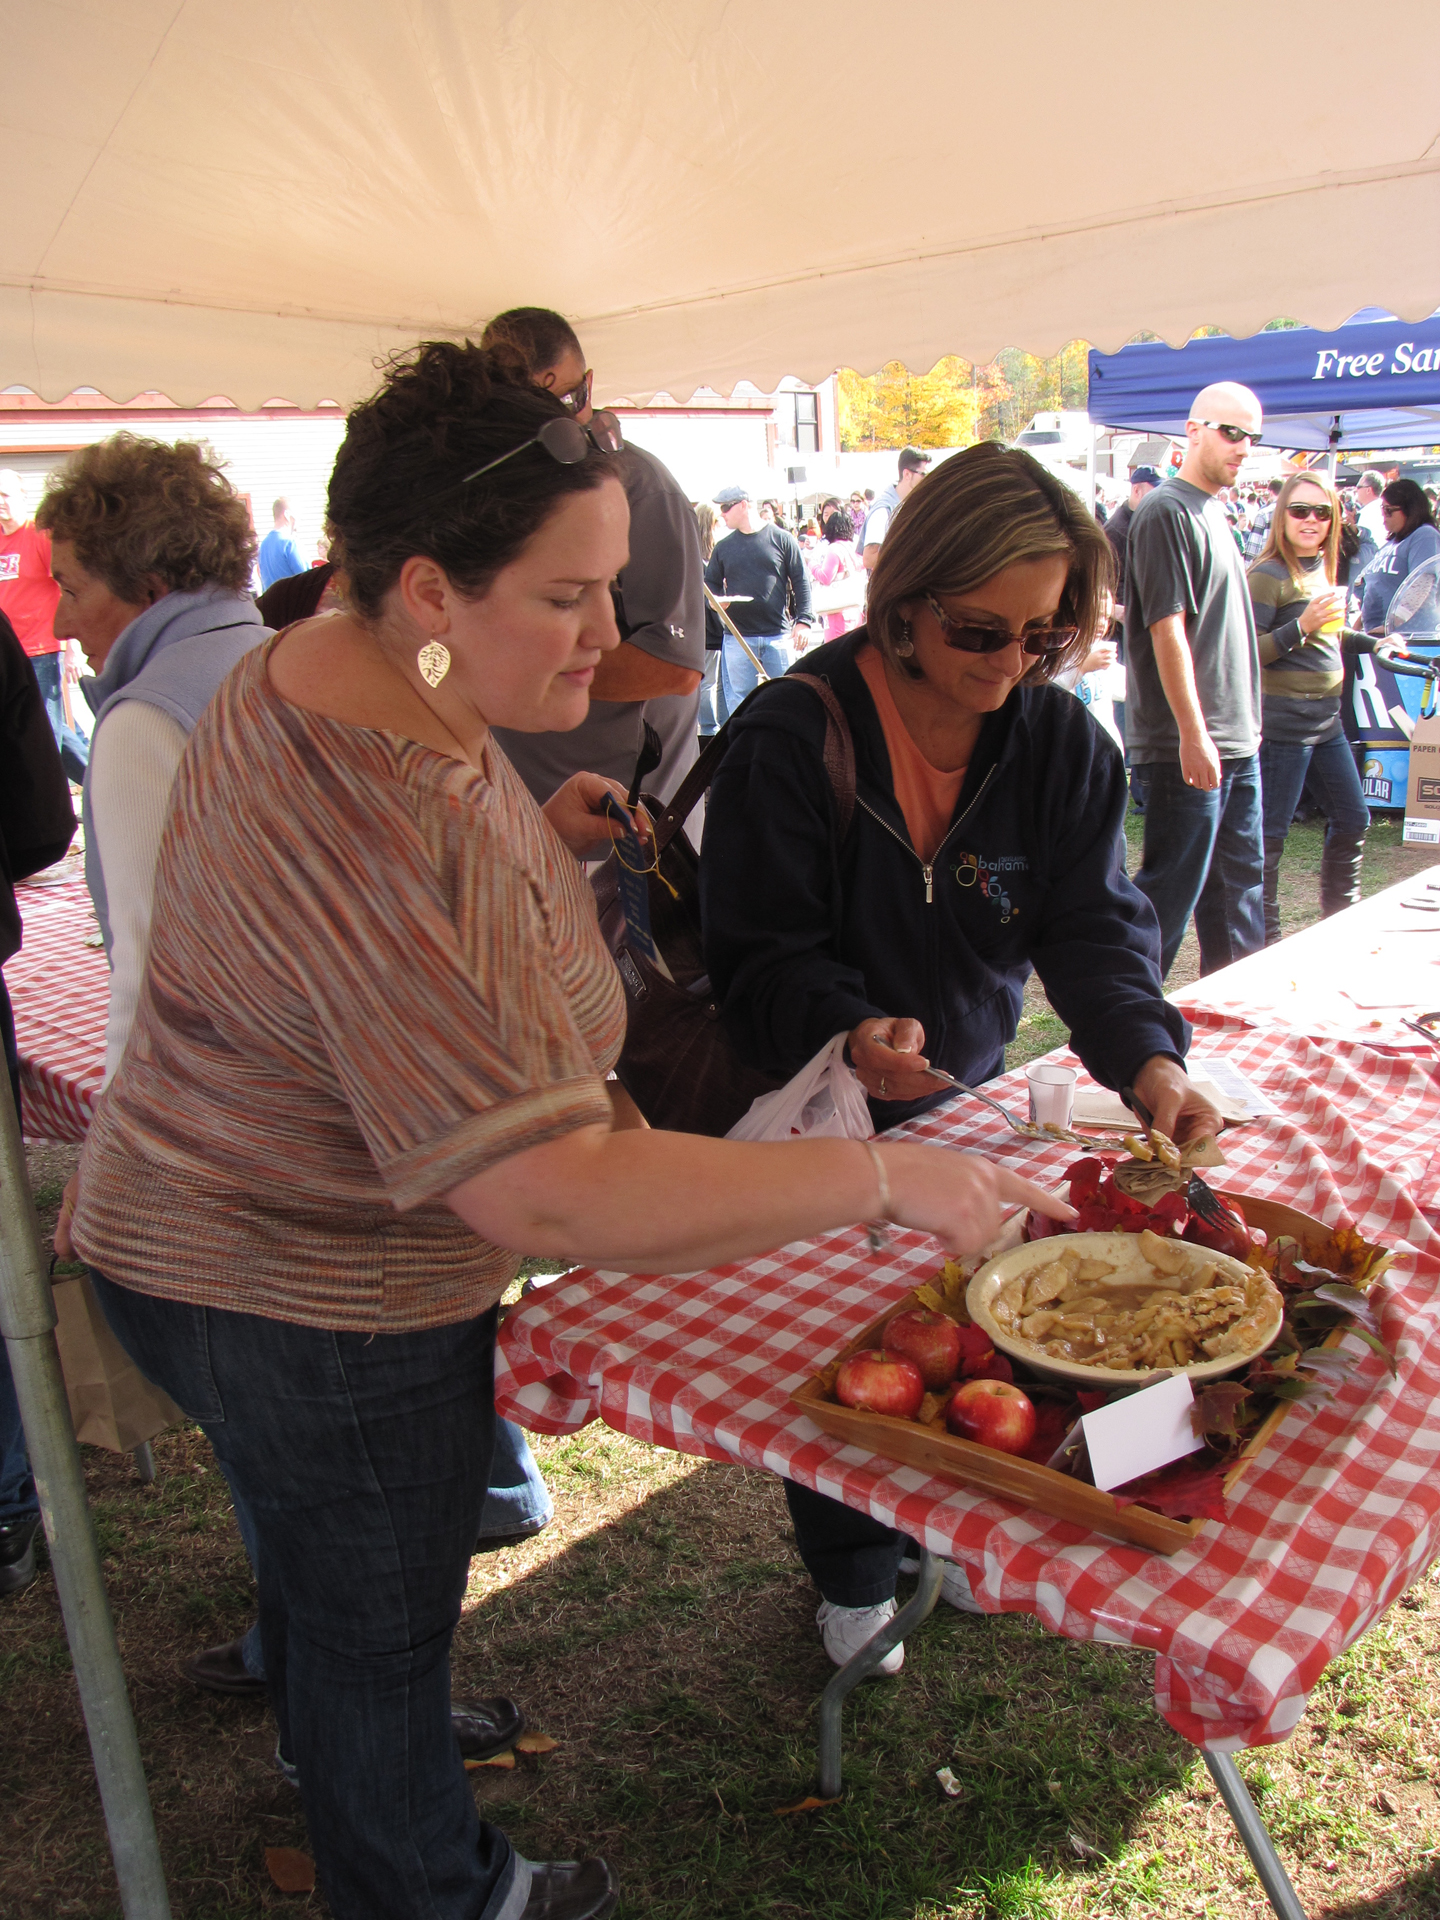 """Great New England Apple Pie"" winner Lori Meiners points to her pie as a spectator prepares to sample it after the judging. (Russell Steven Powell photo)"